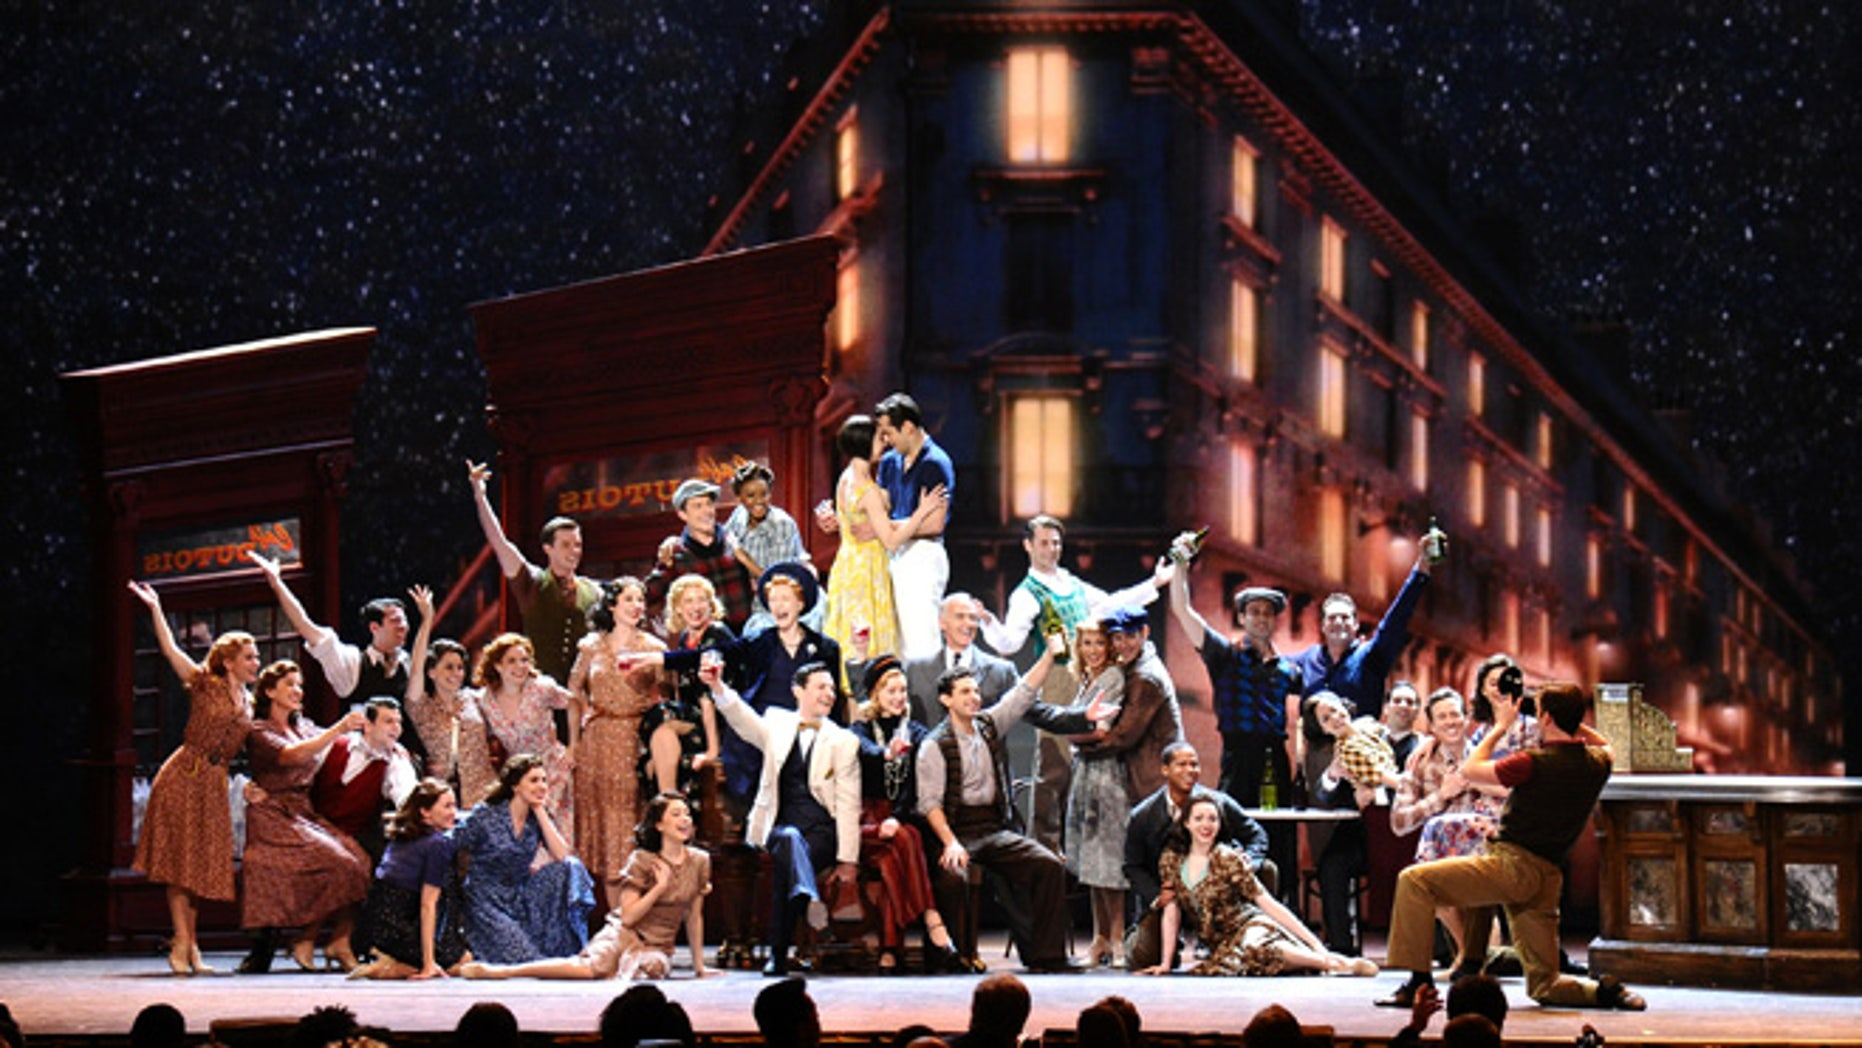 The cast of An American in Paris performs at the 69th annual Tony Awards at Radio City Music Hall on Sunday, June 7, 2015, in New York. (Photo by Charles Sykes/Invision/AP)